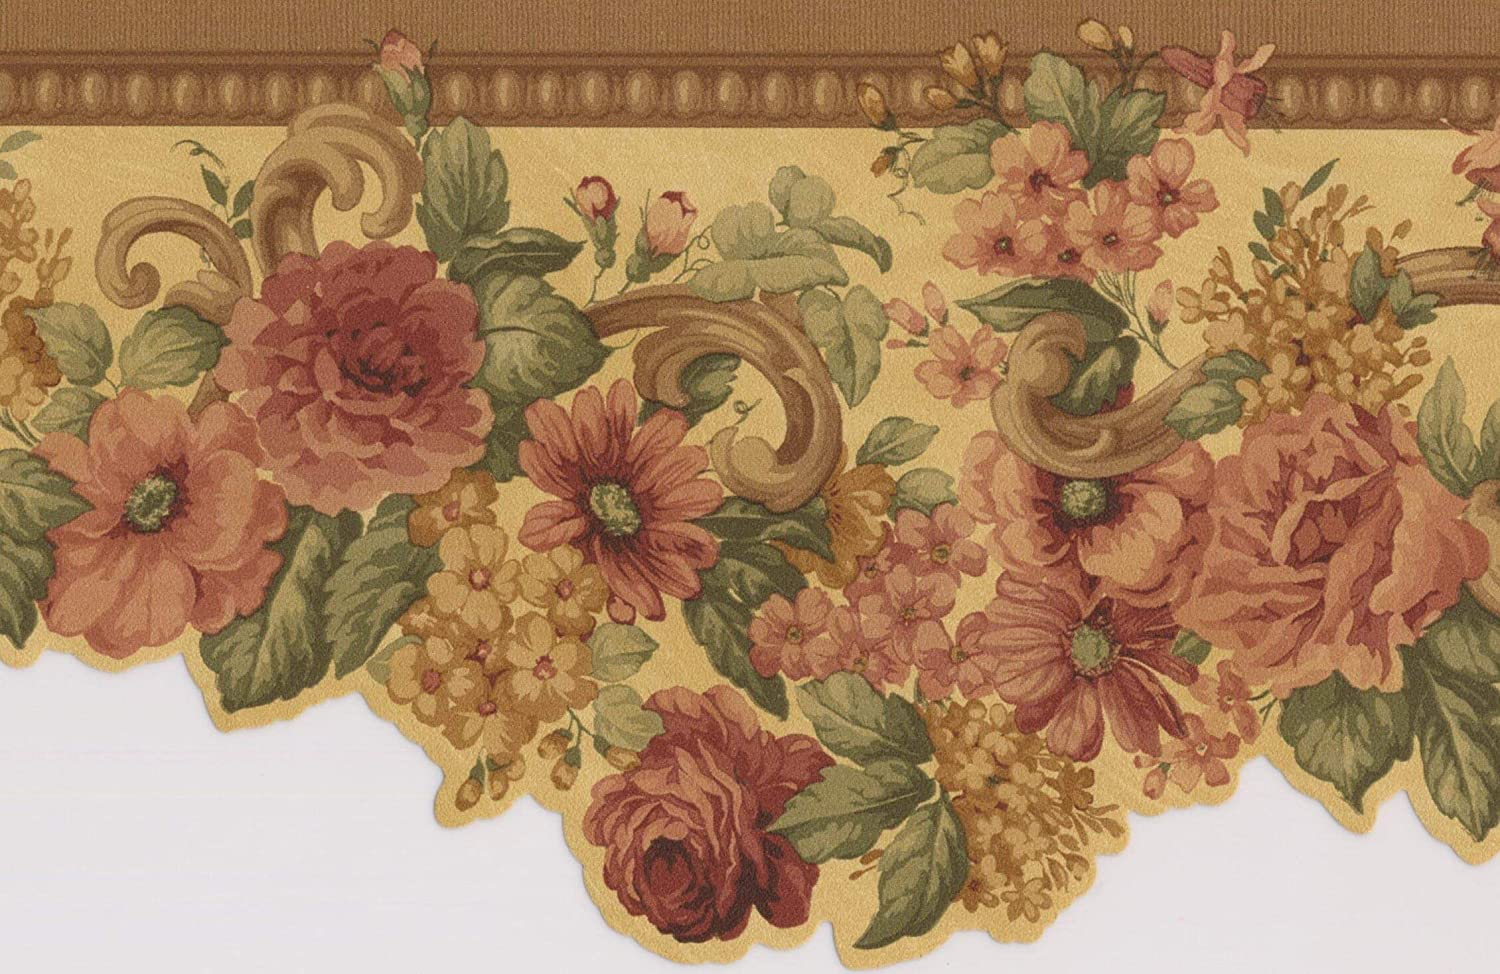 Pink Roses Yellow Floral Wallpaper Border Retro Design Roll 15 X